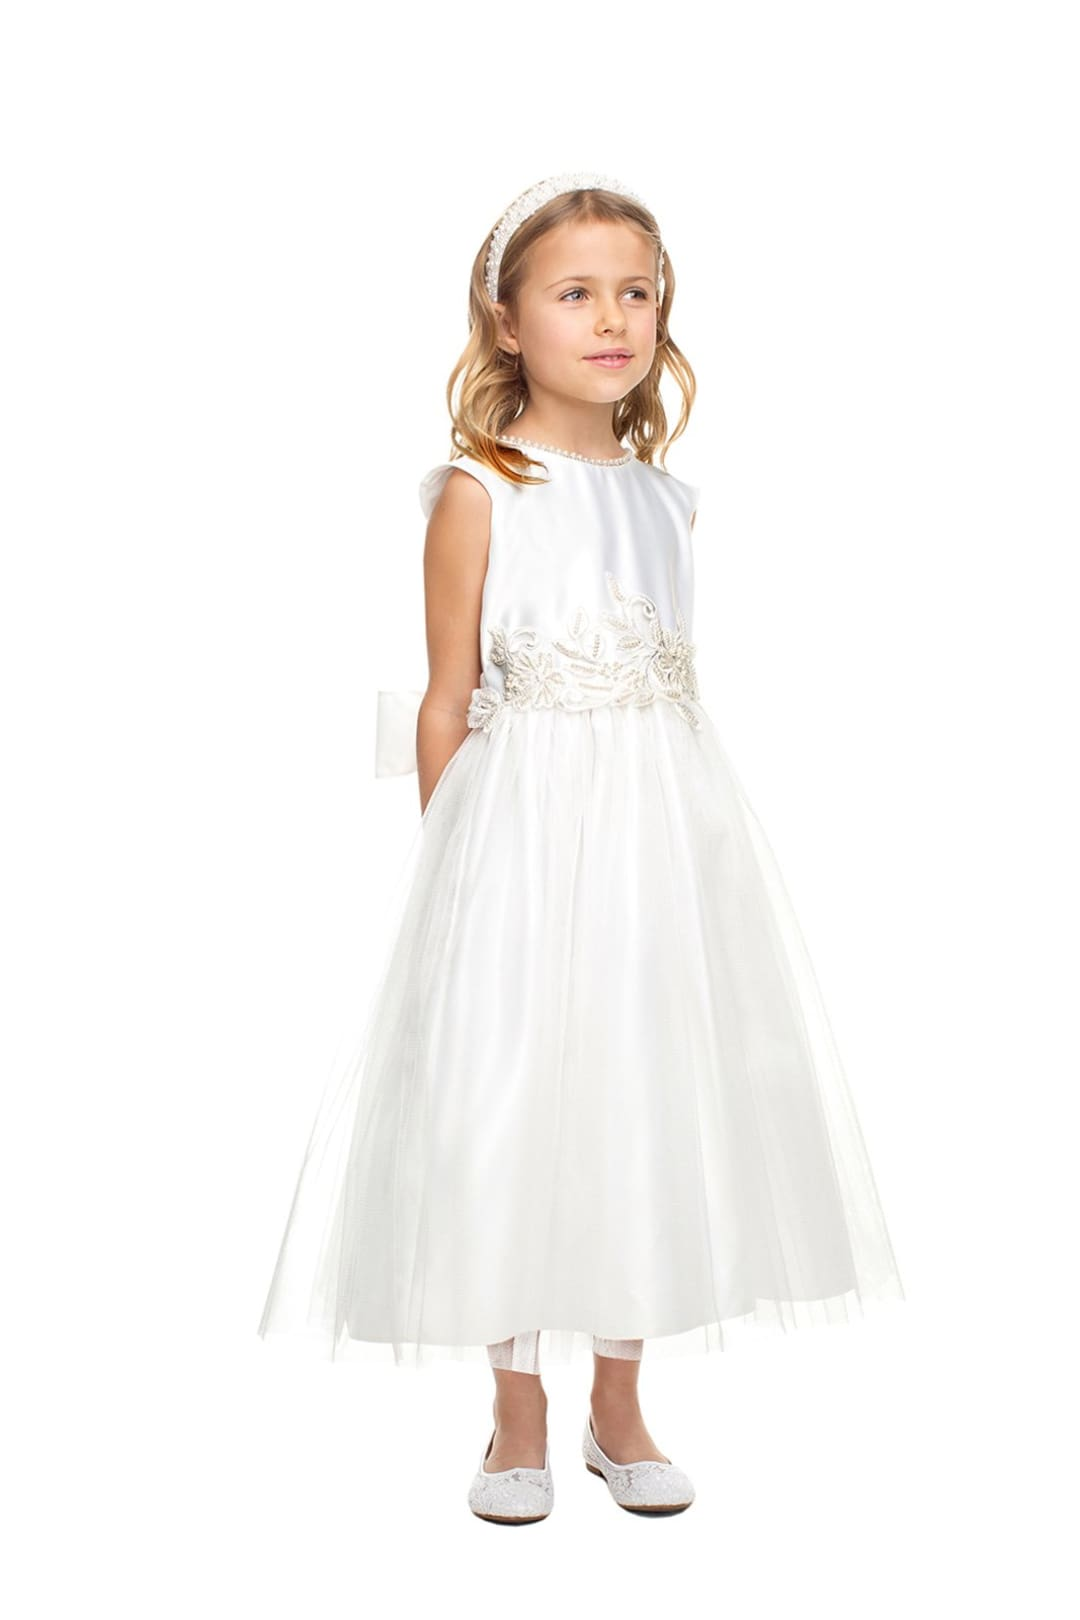 Sweet Flower Girl Pearl Dress - LAK850 - White / 2